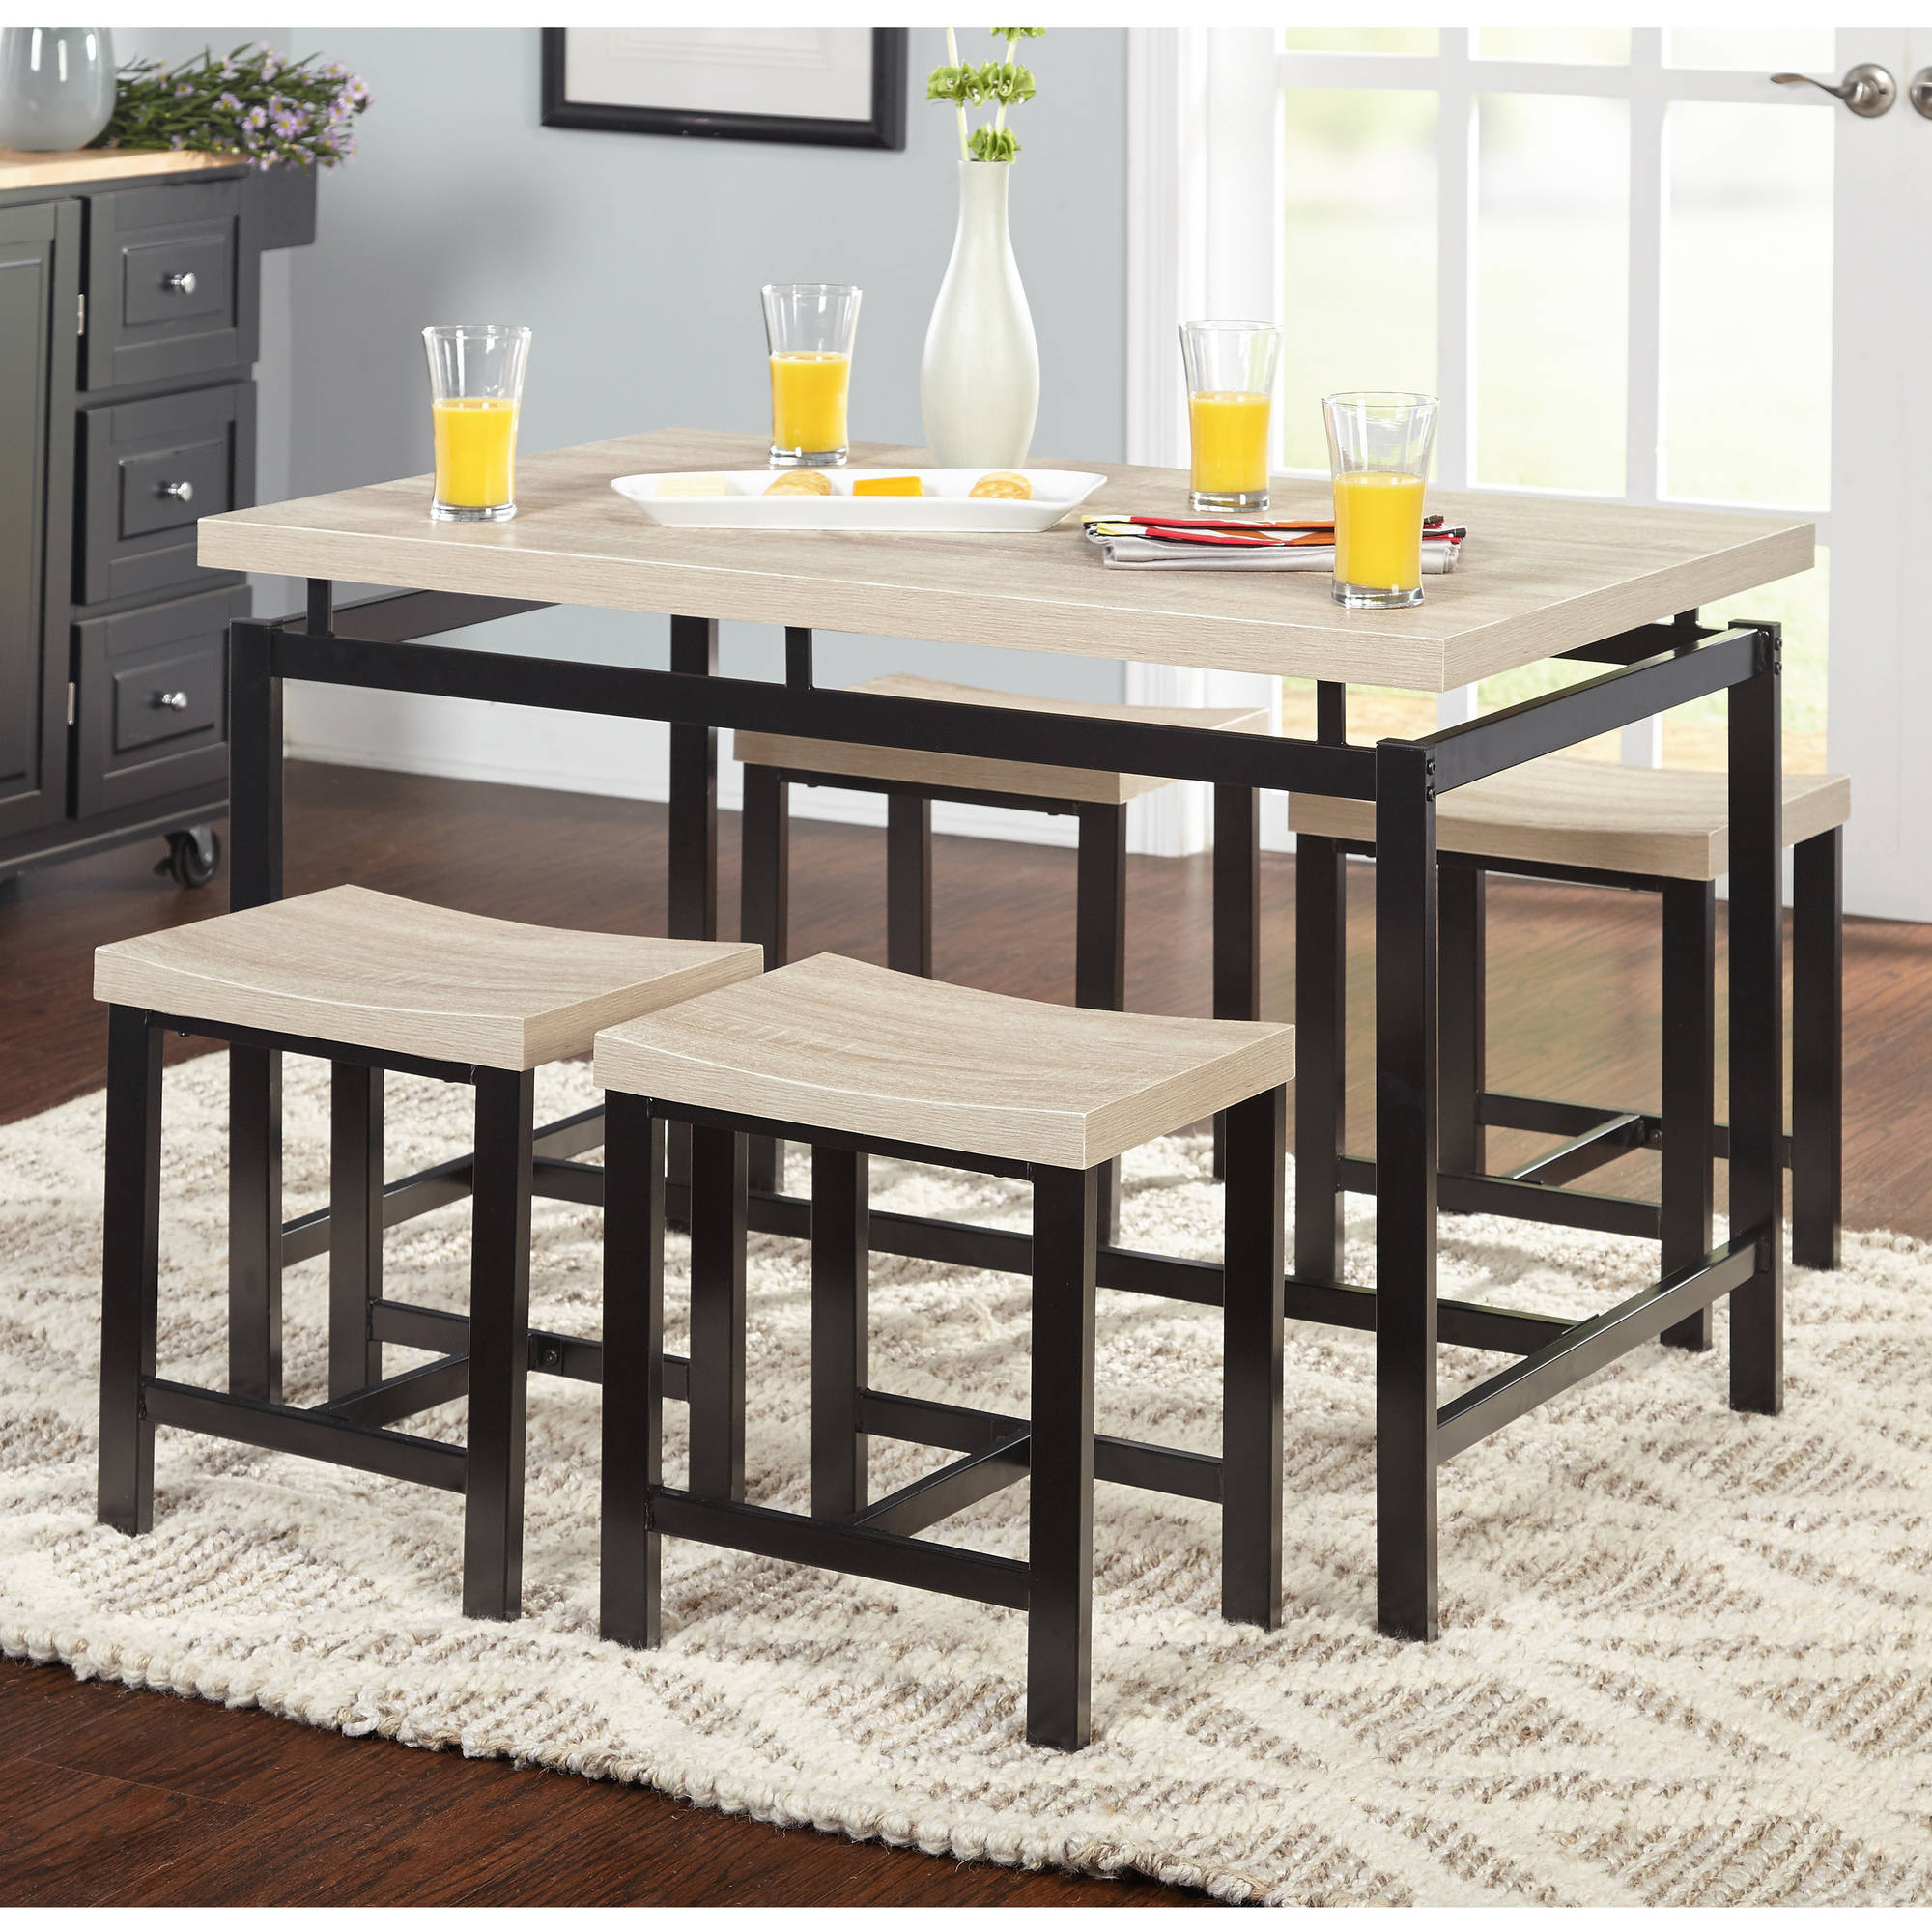 5 Piece Delano Dining Set, Natural   Walmart.com